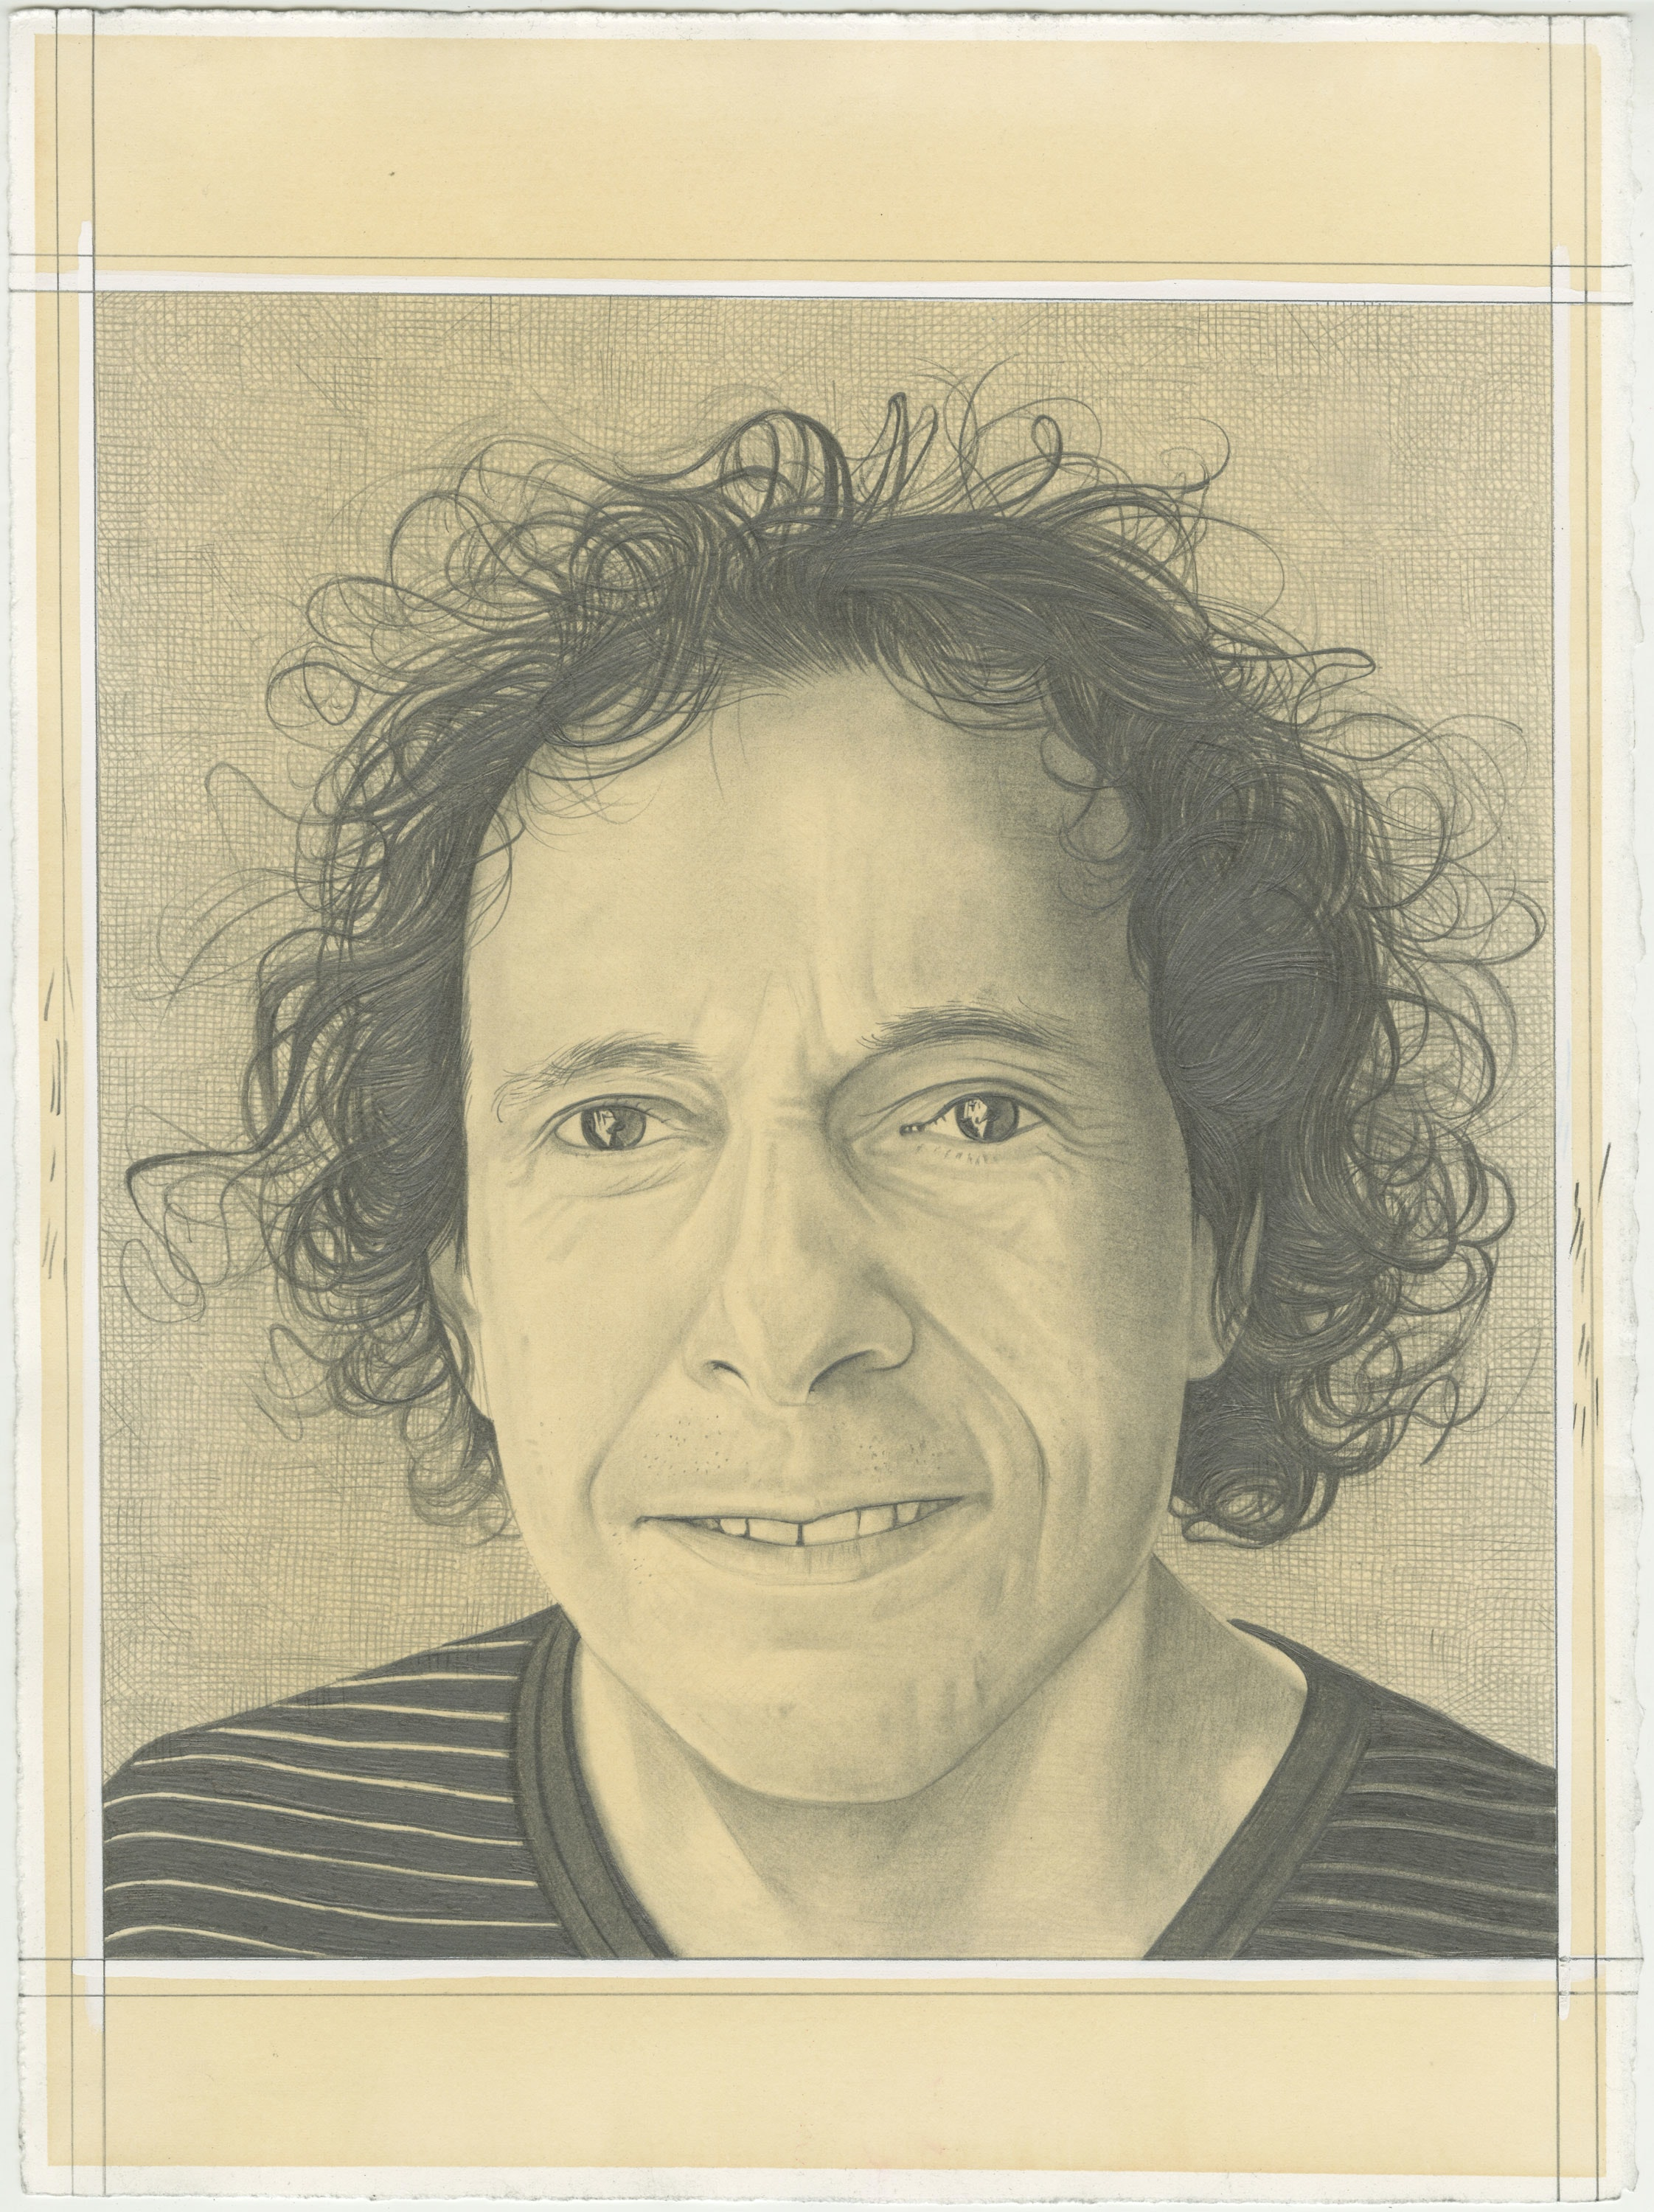 Portrait of Craig Kalpakjian, pencil on paper by Phong H. Bui.